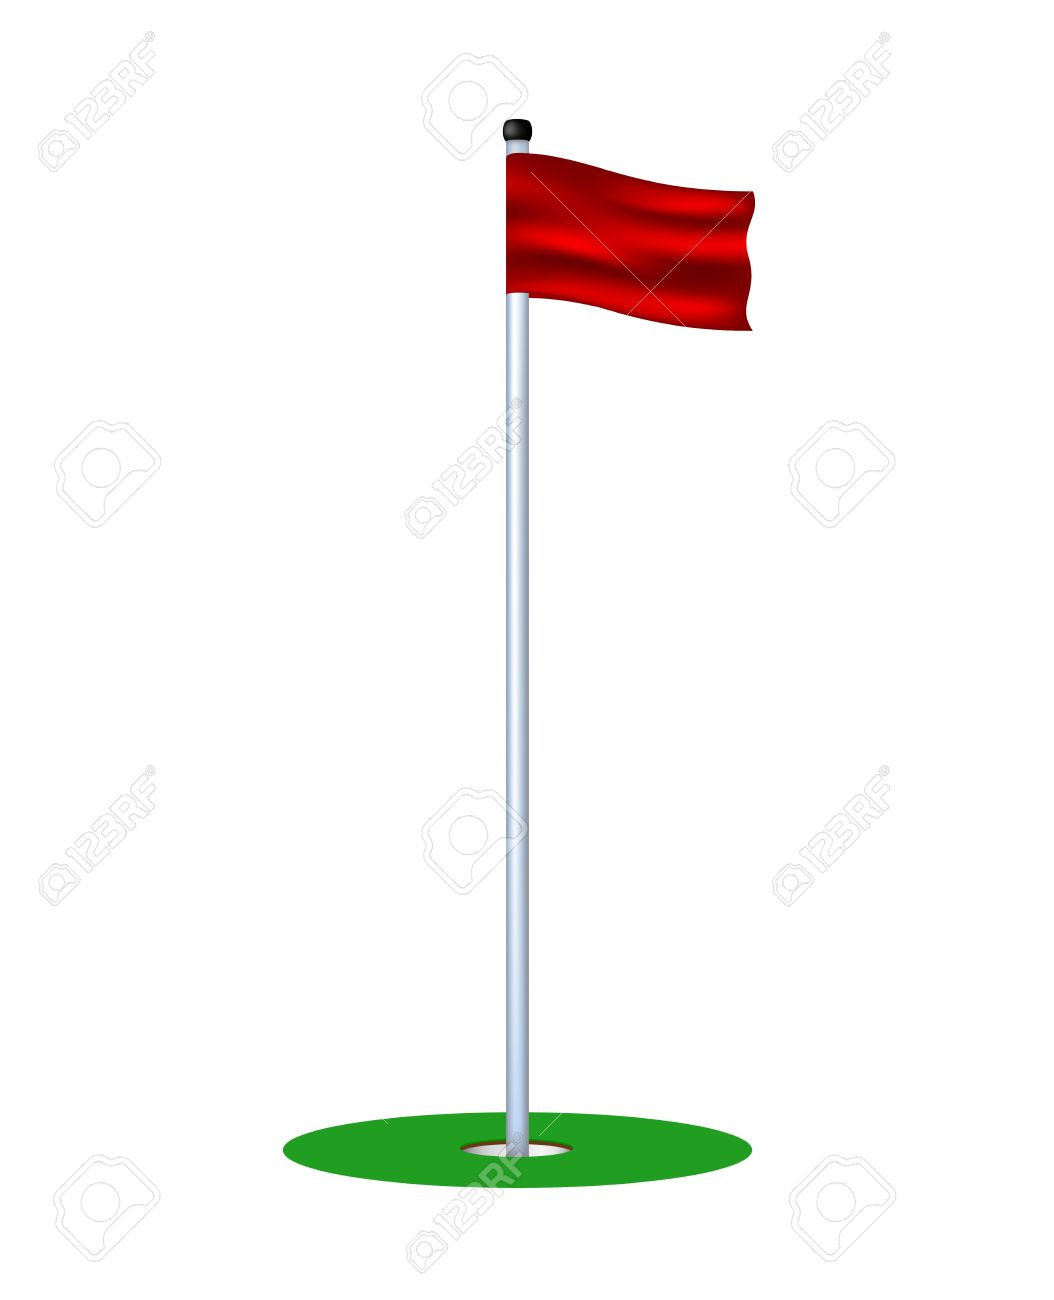 6,588 Golf Flag Stock Vector Illustration And Royalty Free Golf ...